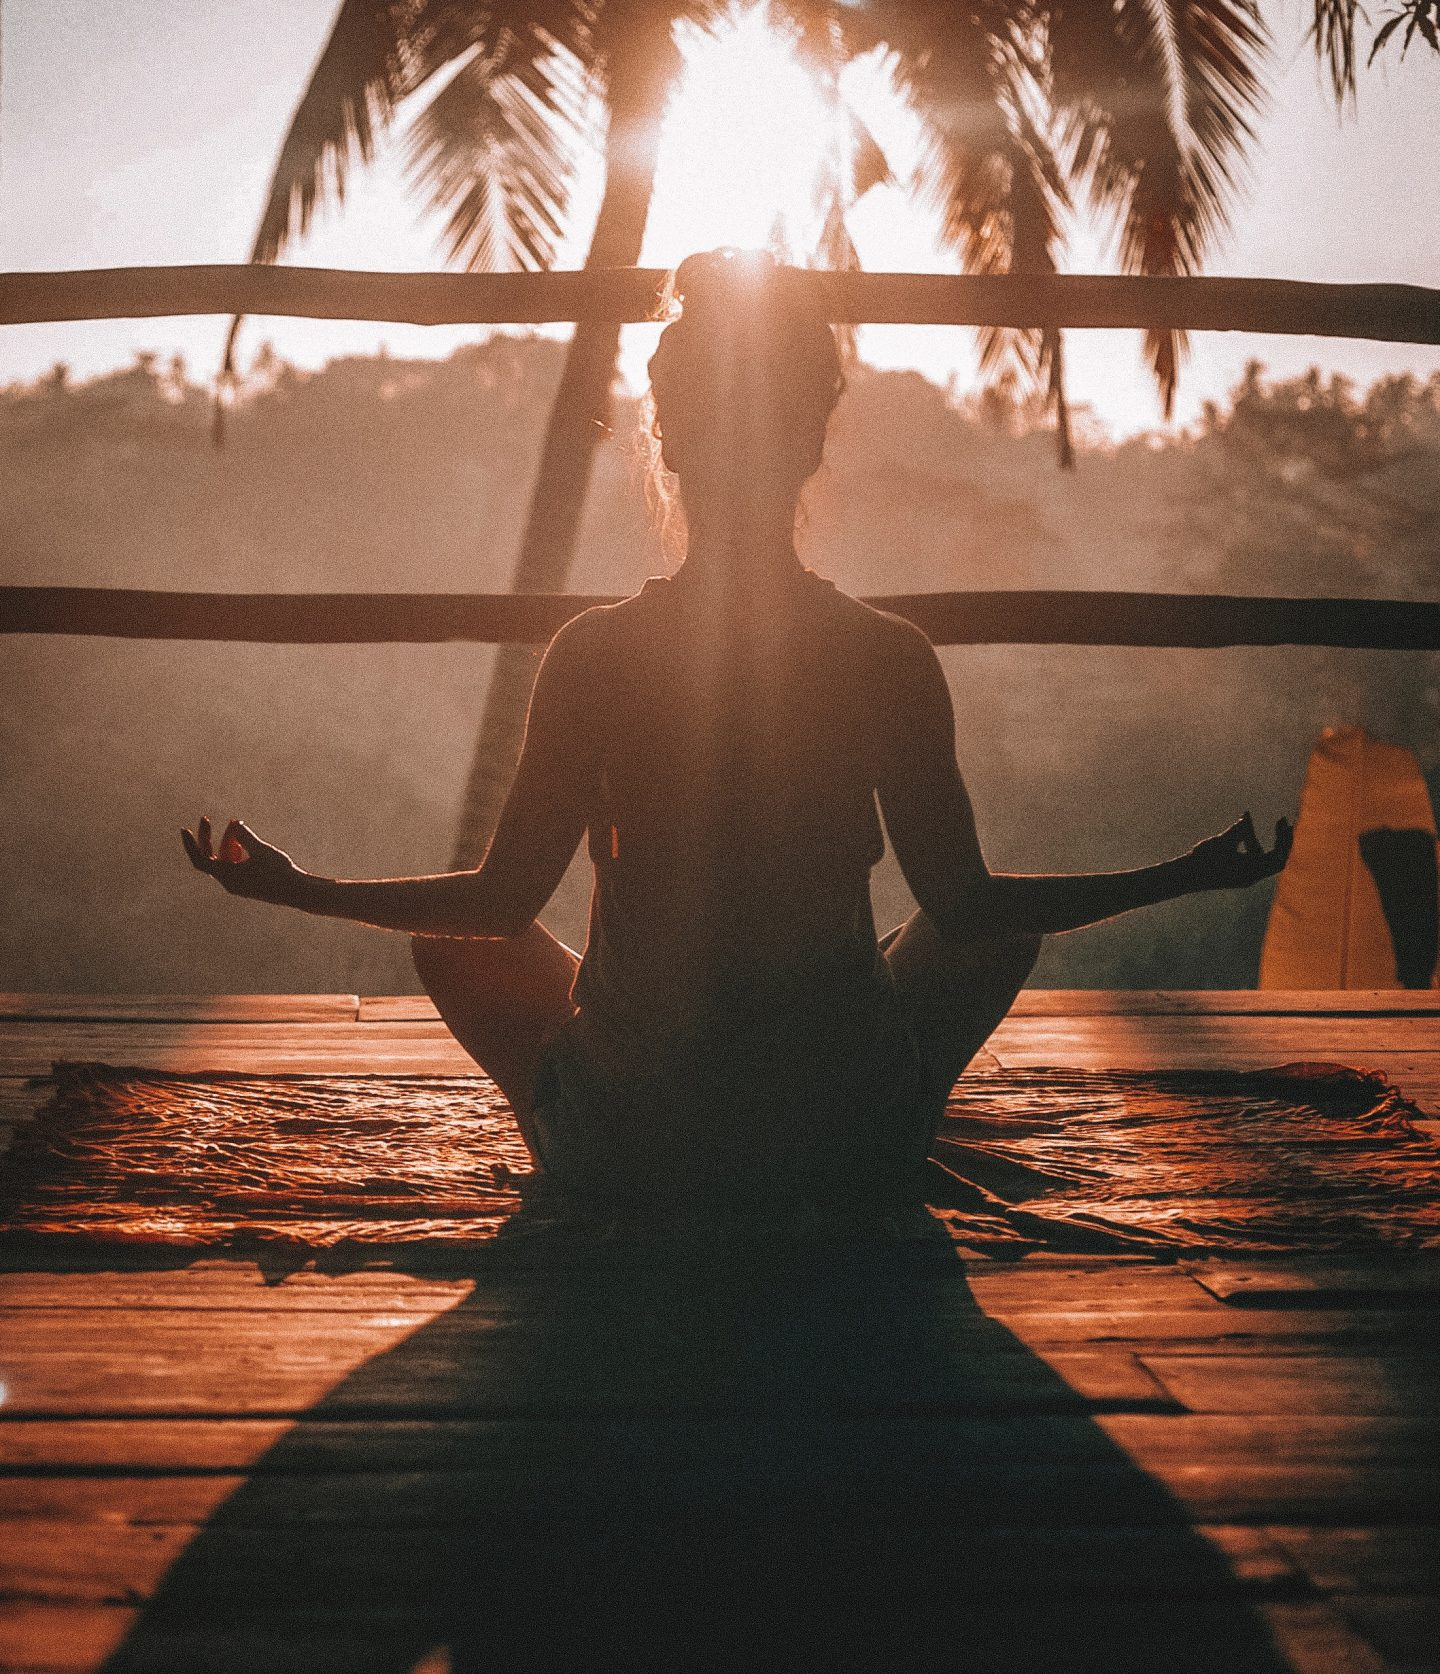 everyday ways you can practice mindfulness